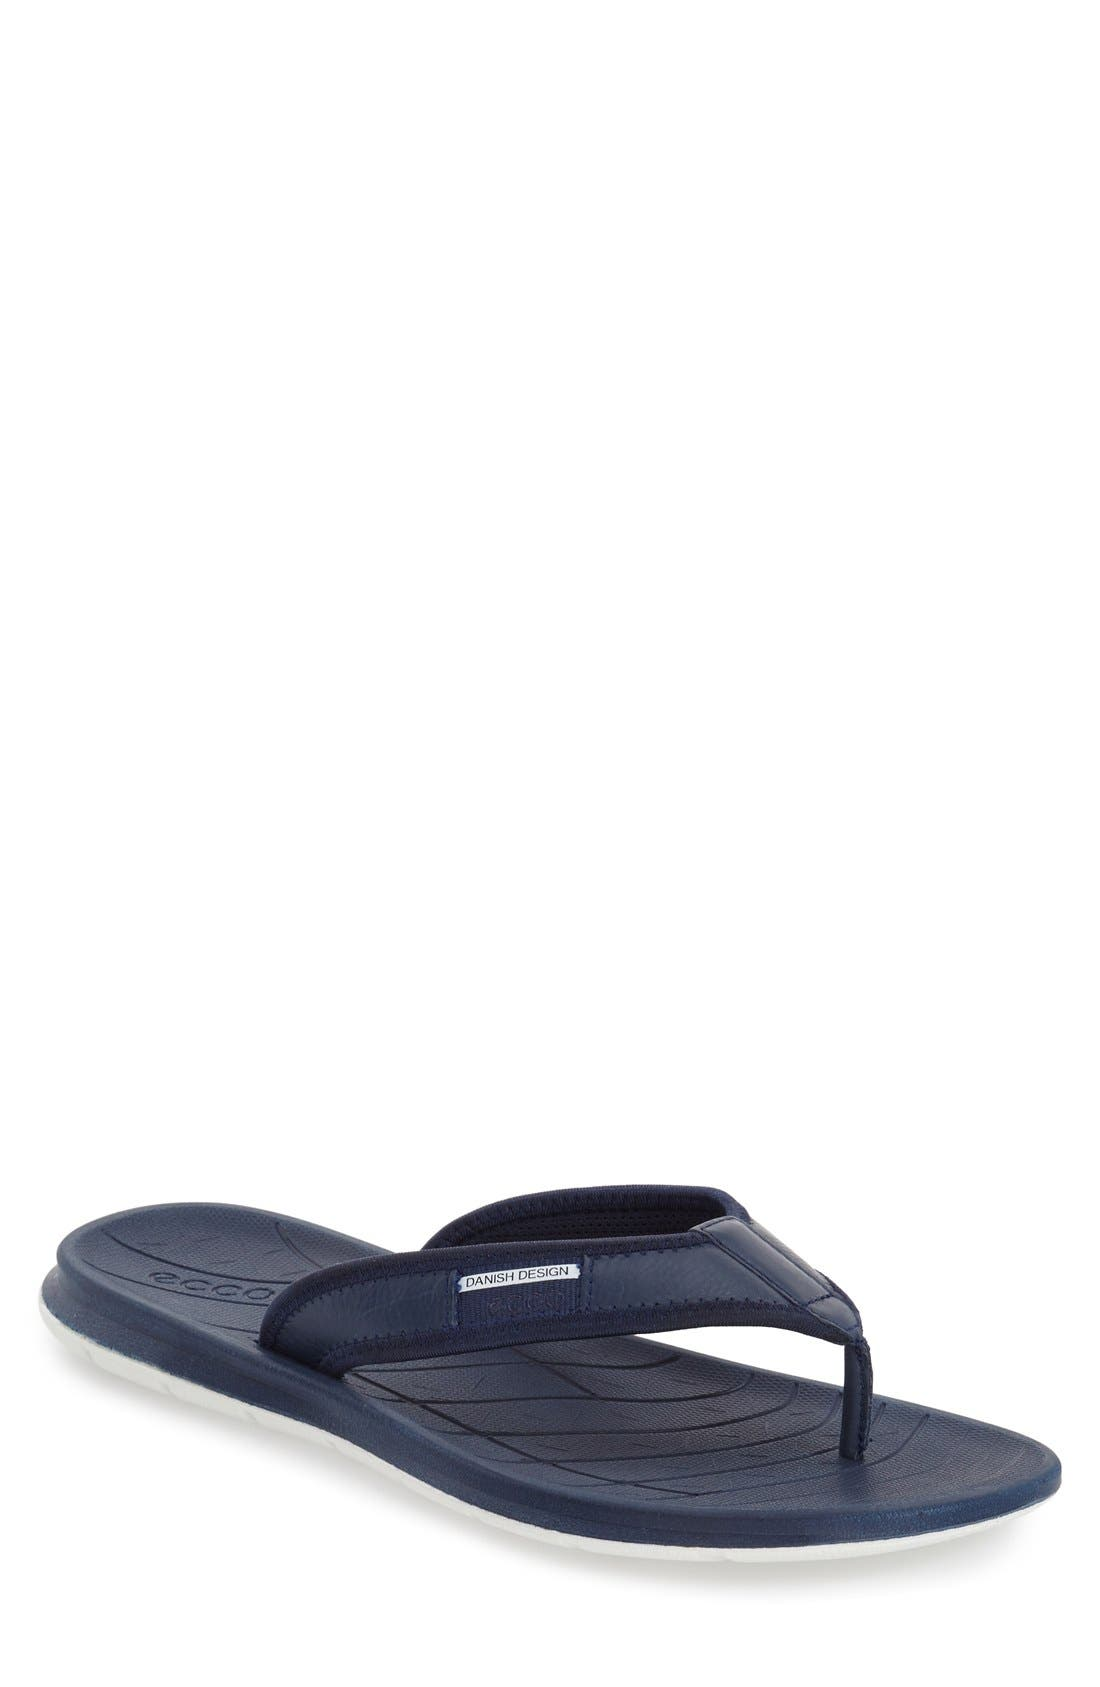 'Intrinsic' Flip Flop,                         Main,                         color, 474